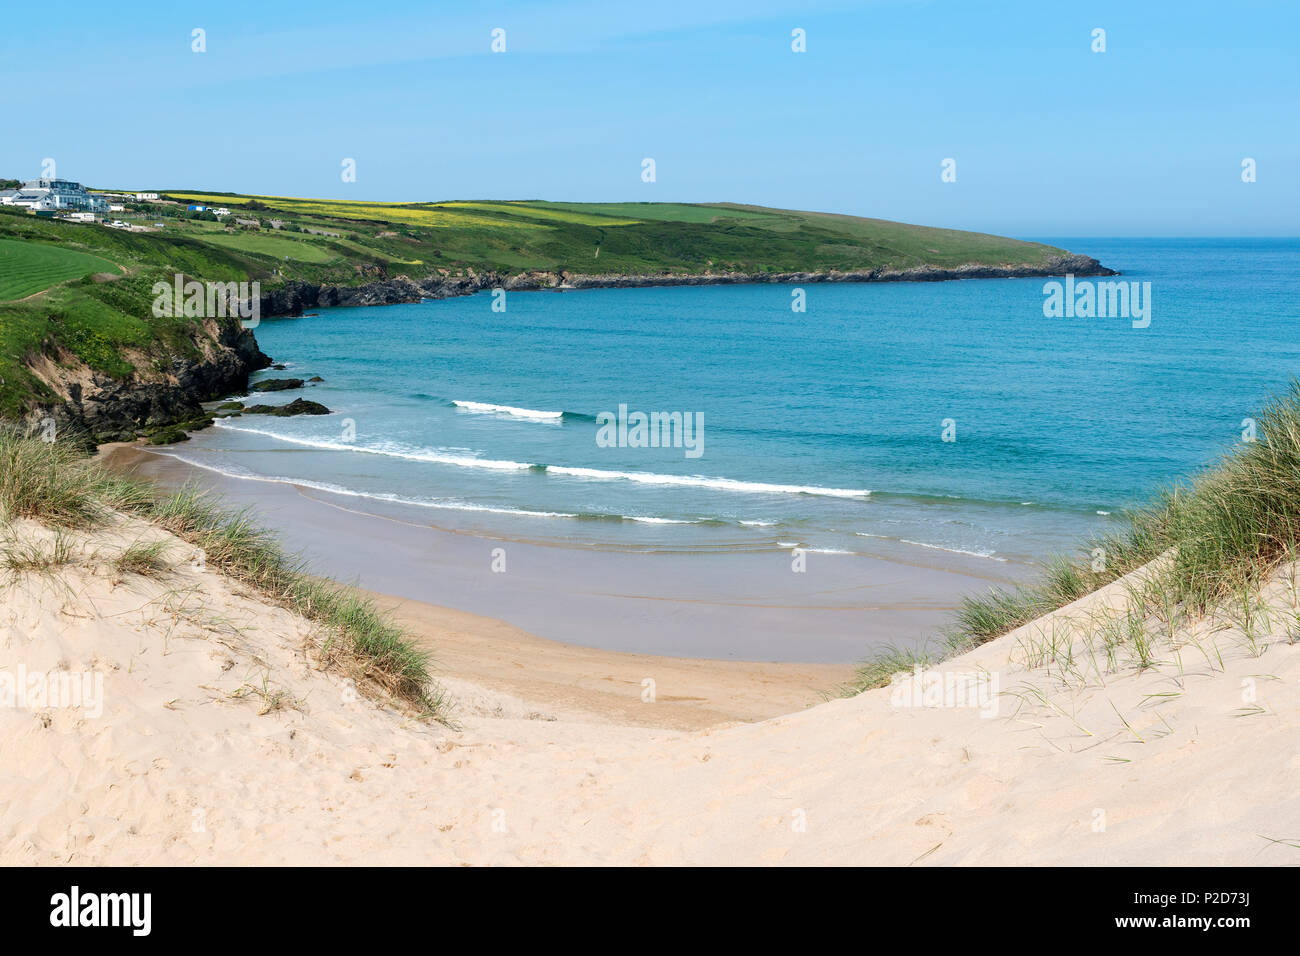 summer at crantock beach near newquay in cornwall, england, britain, uk - Stock Image